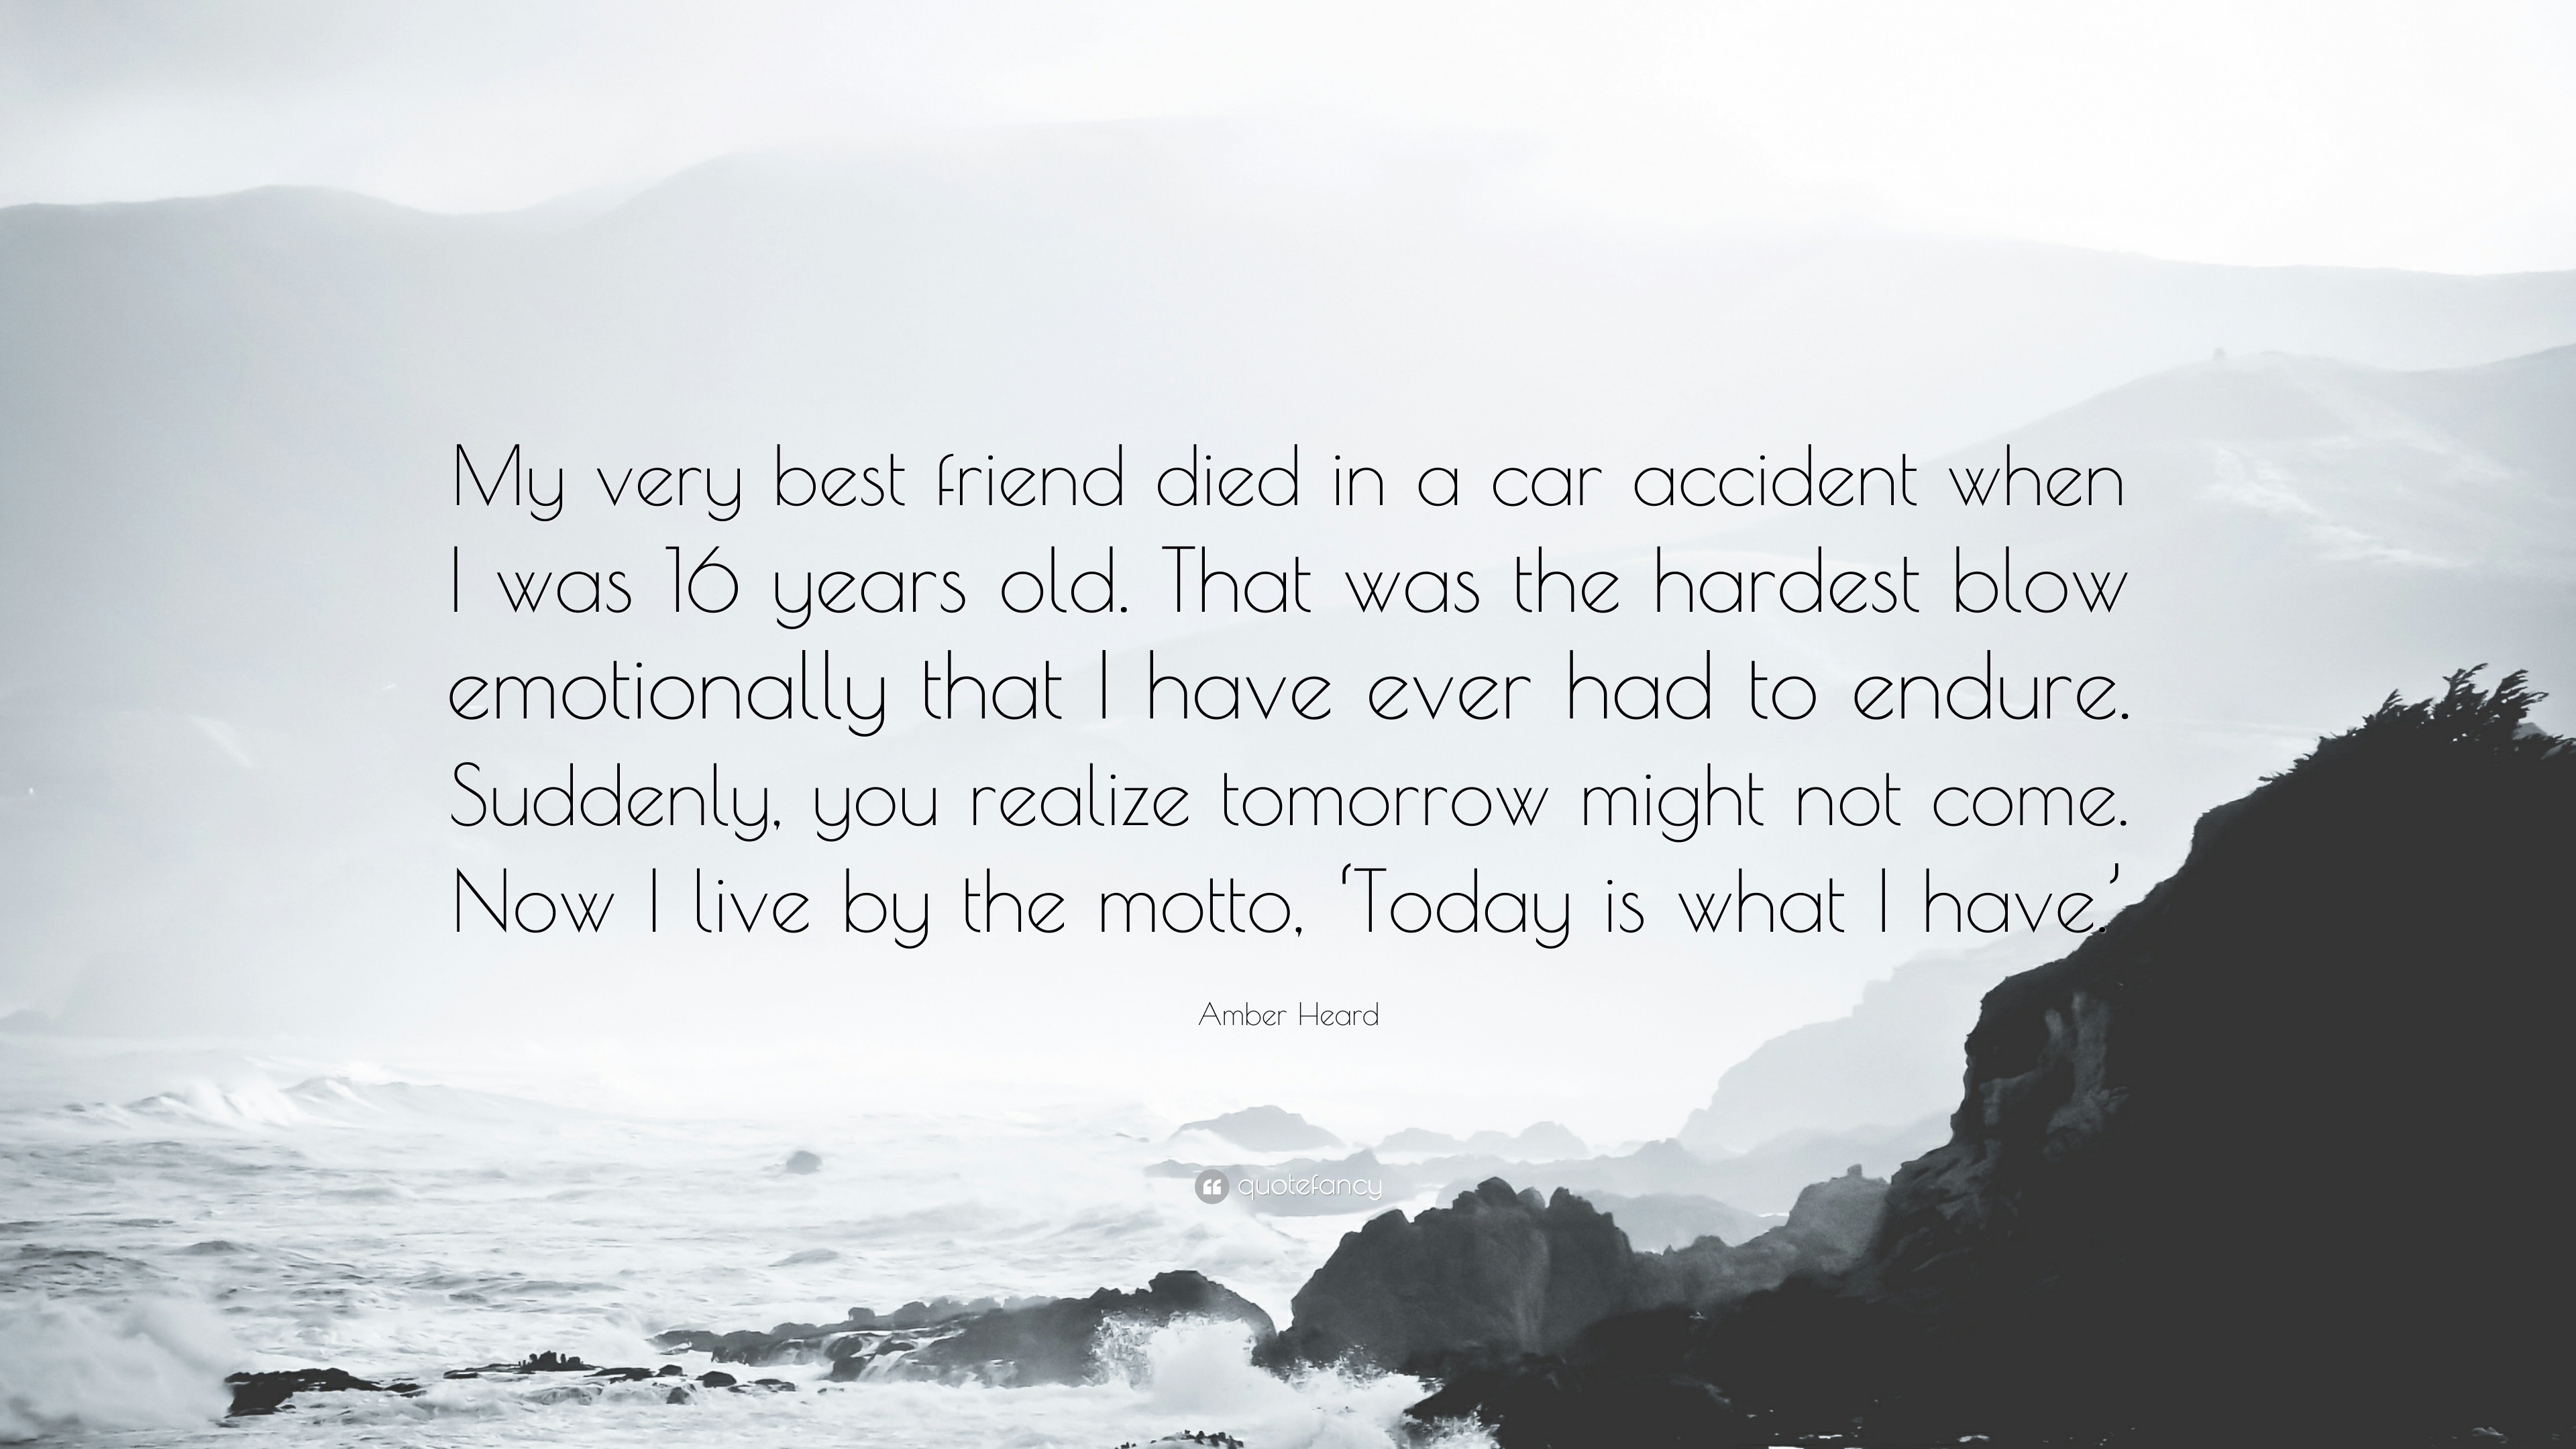 Best friend died in car accident